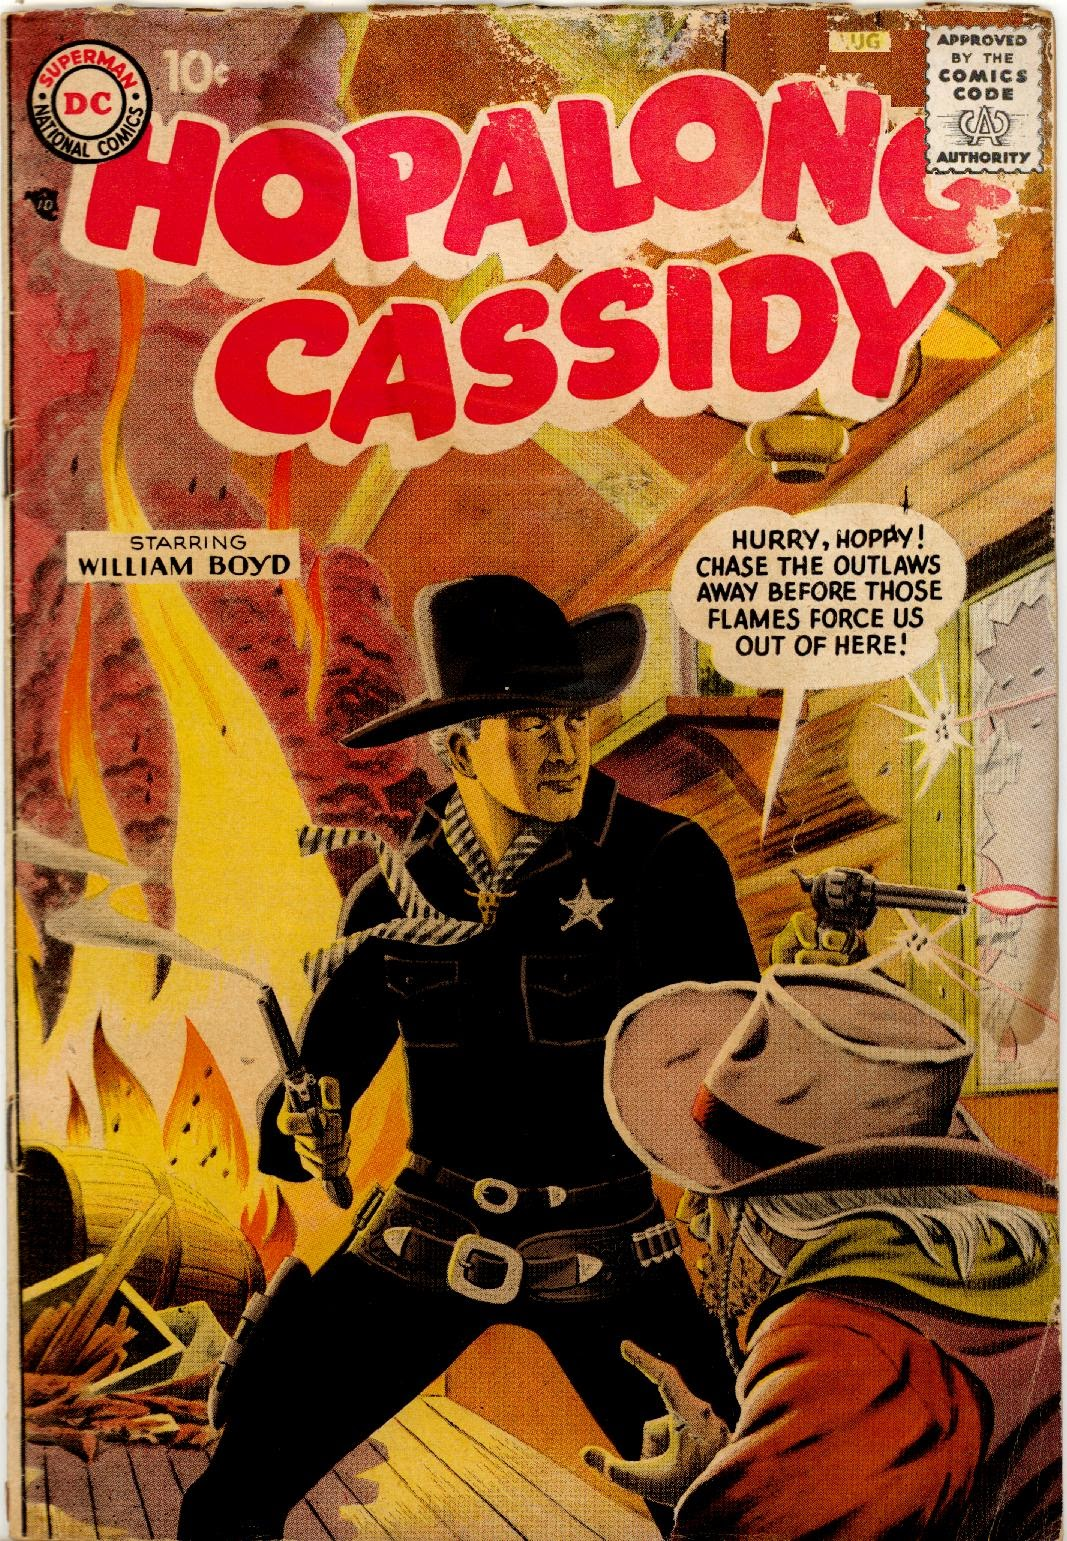 Hopalong Cassidy issue 124 - Page 1